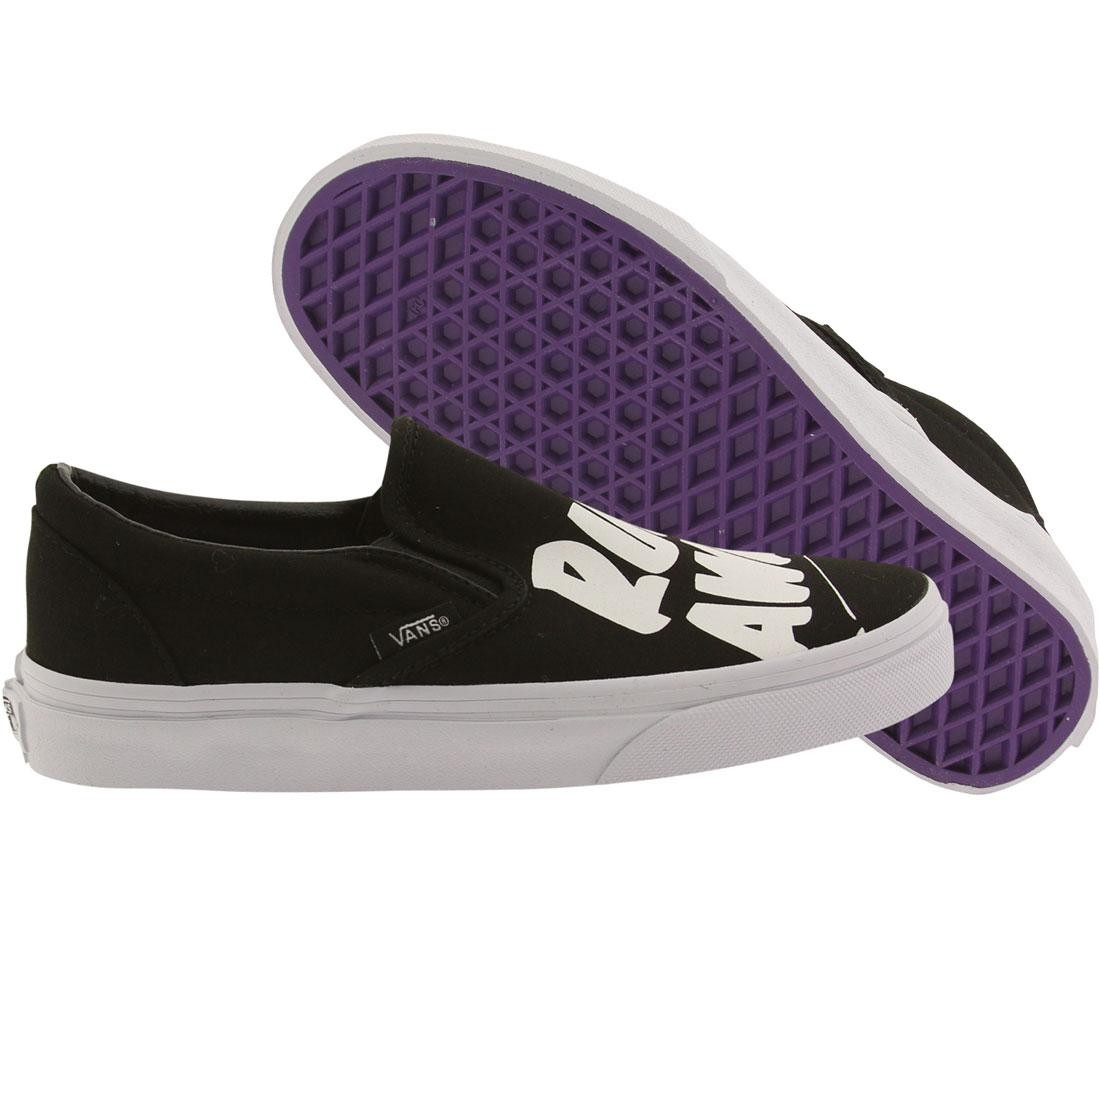 Vans Women Classic Slip-On - Baron Von Fancy (black / white)